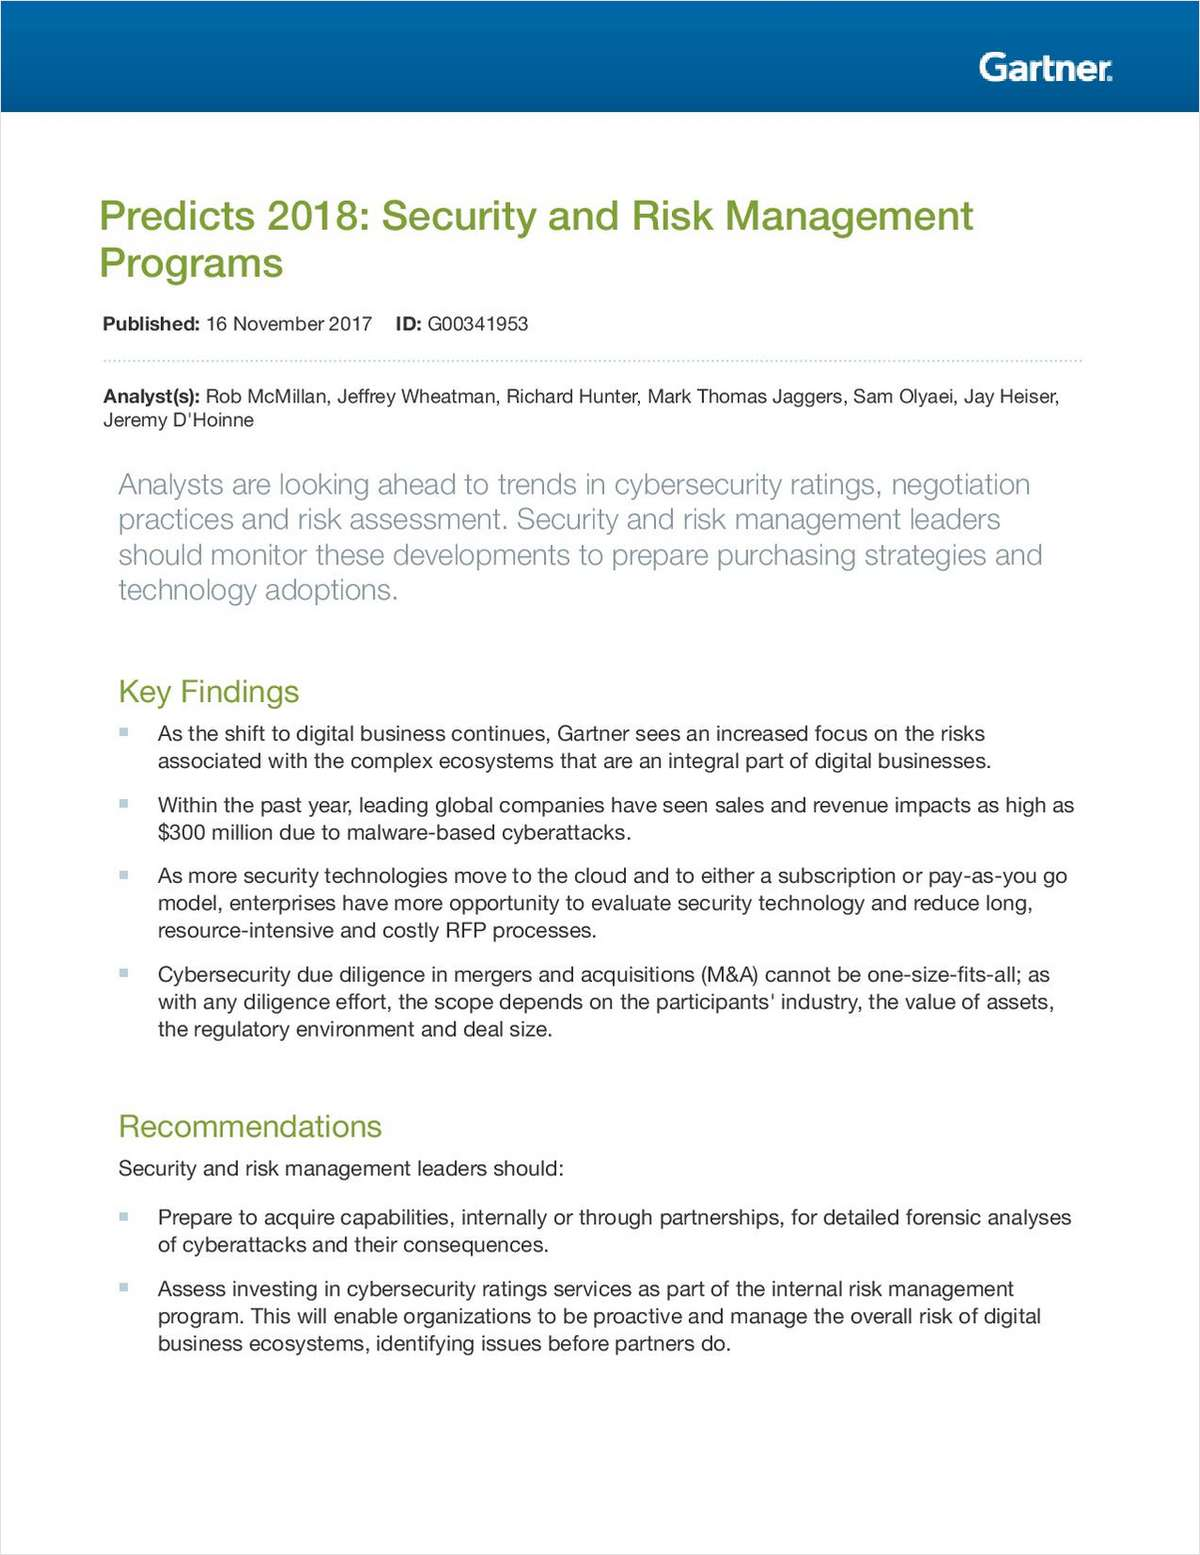 Predicts 2018: Security and Risk Management Programs